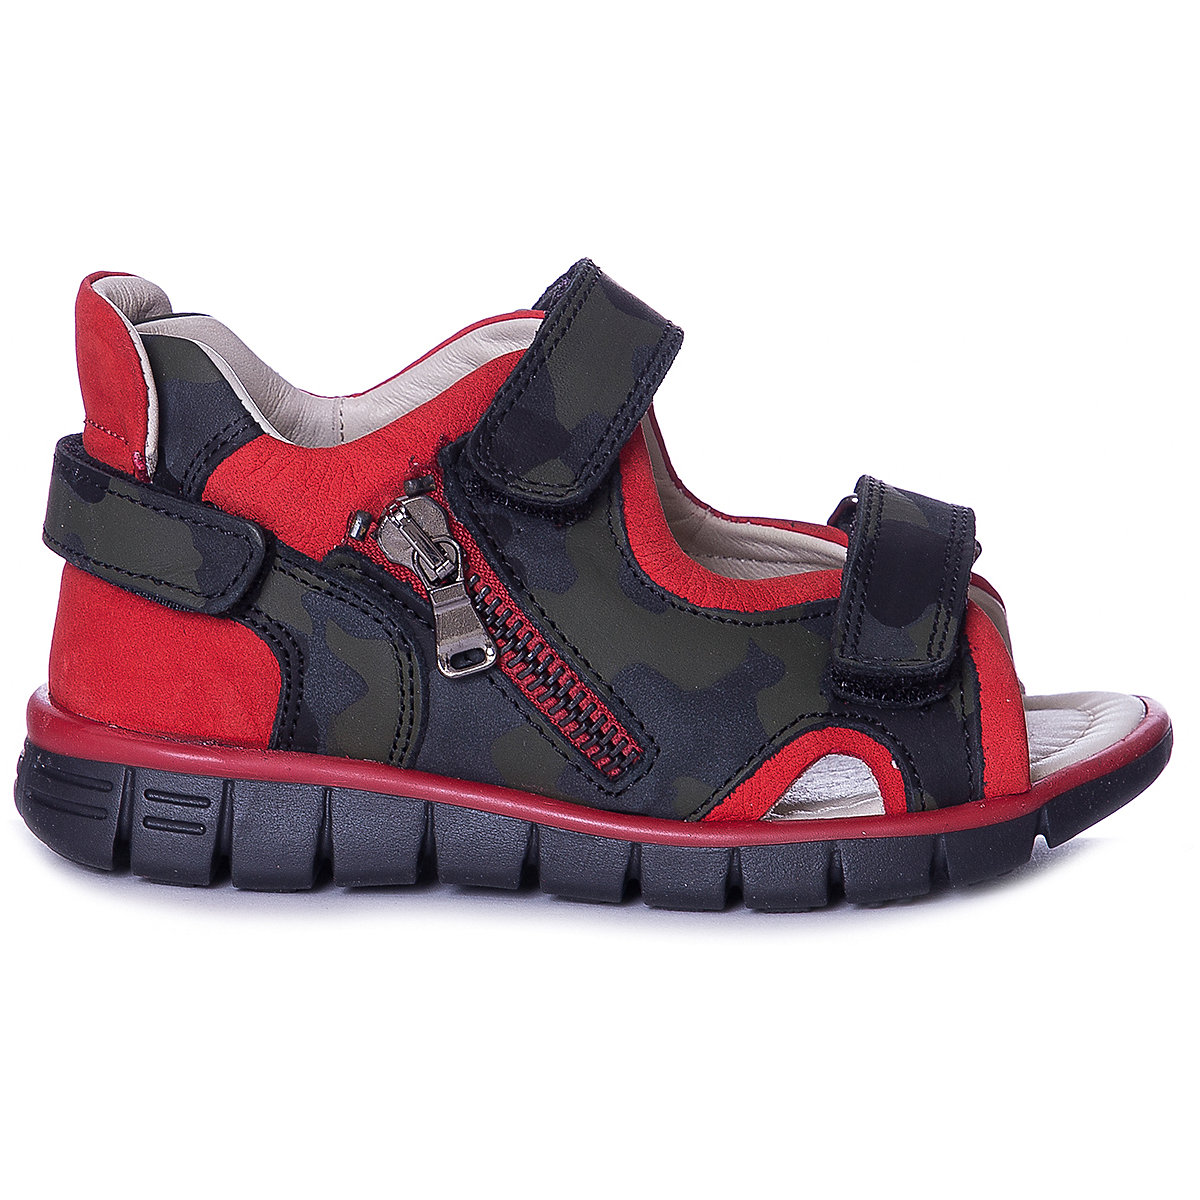 TIFLANI Sandals 10924856 children's shoes comfortable and light girls and boys sandals adidas s74649 sports and entertainment for boys